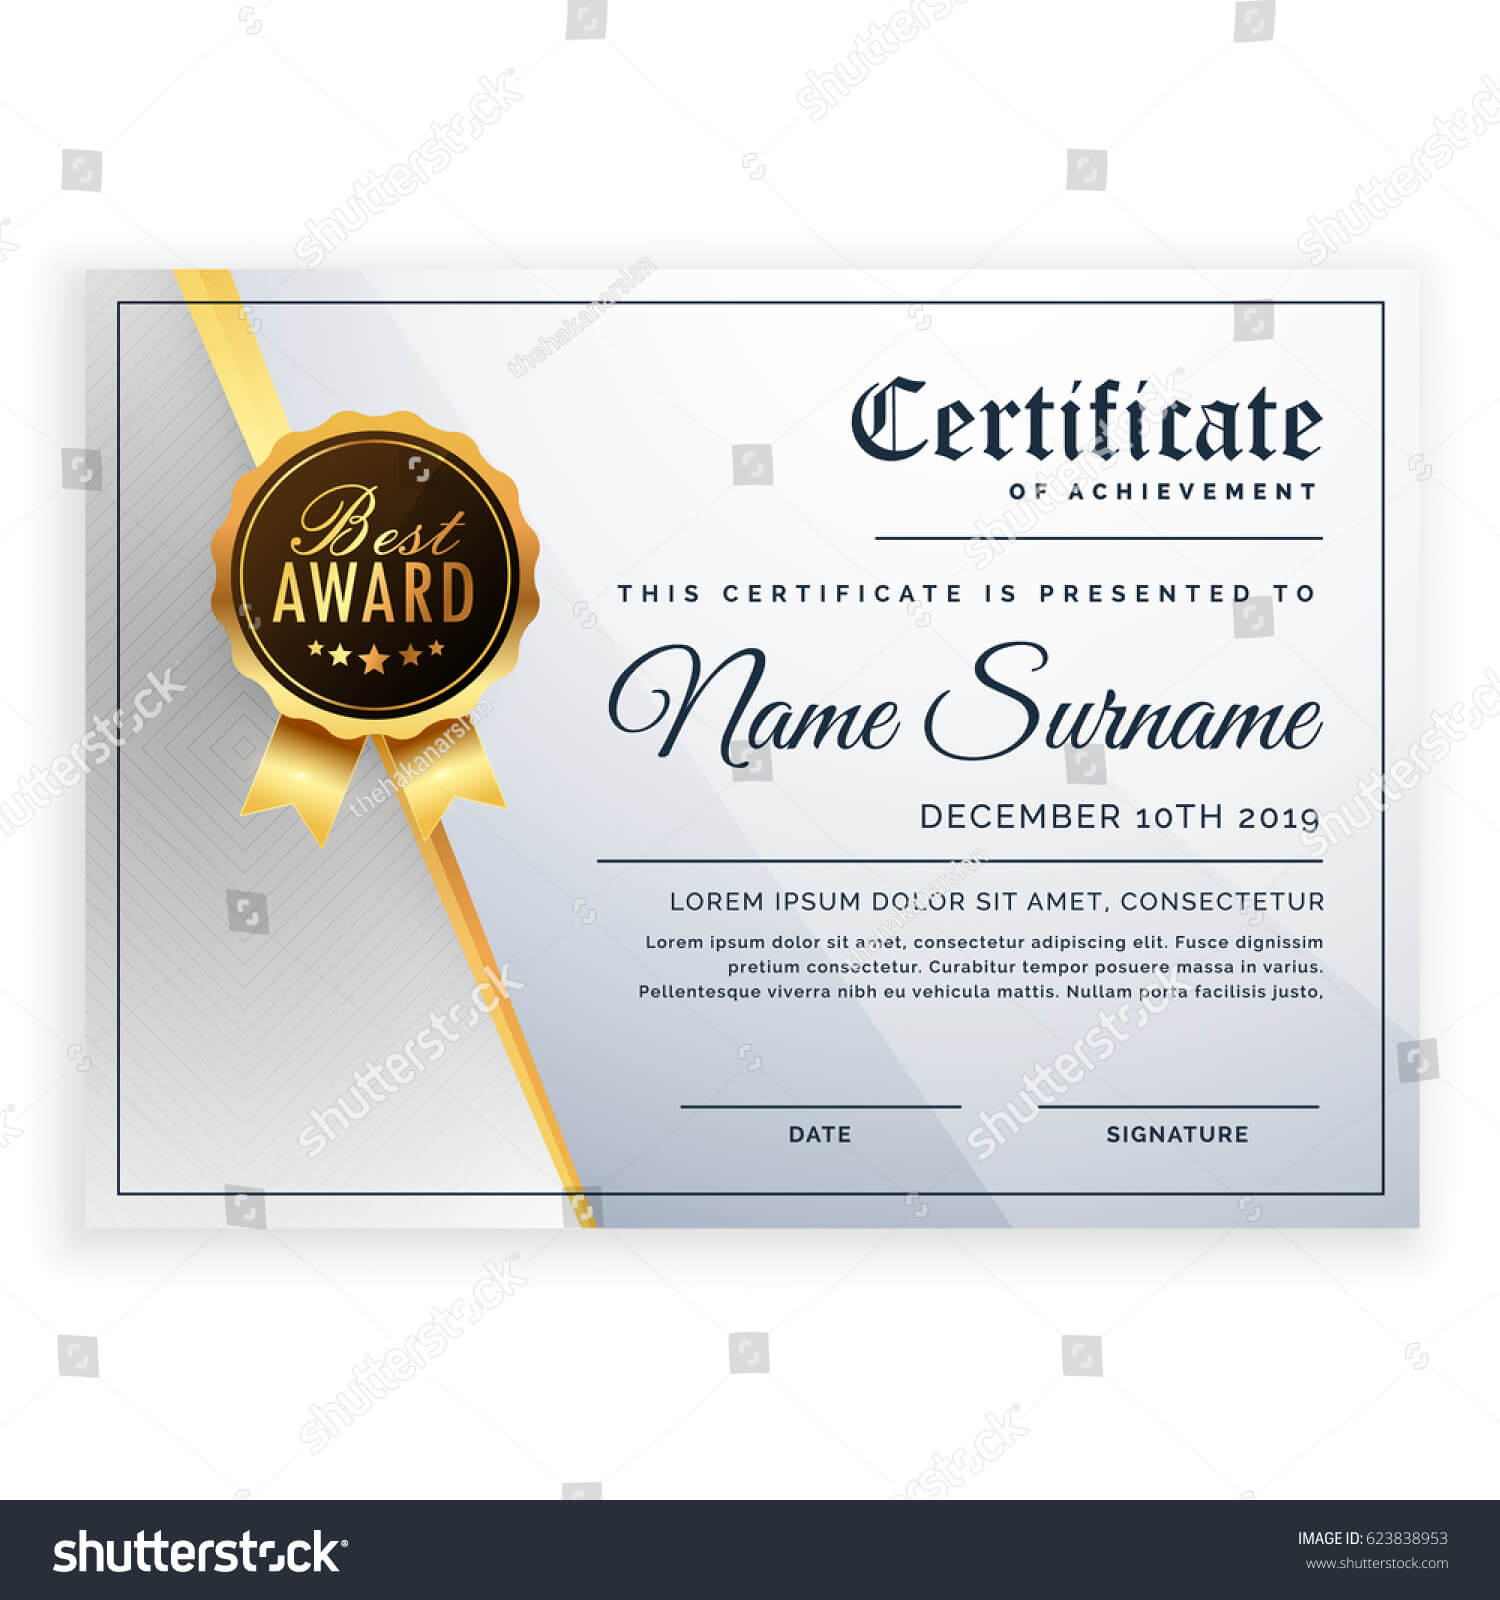 Vector Certificate Template Beautiful Certificate Template In Beautiful Certificate Templates